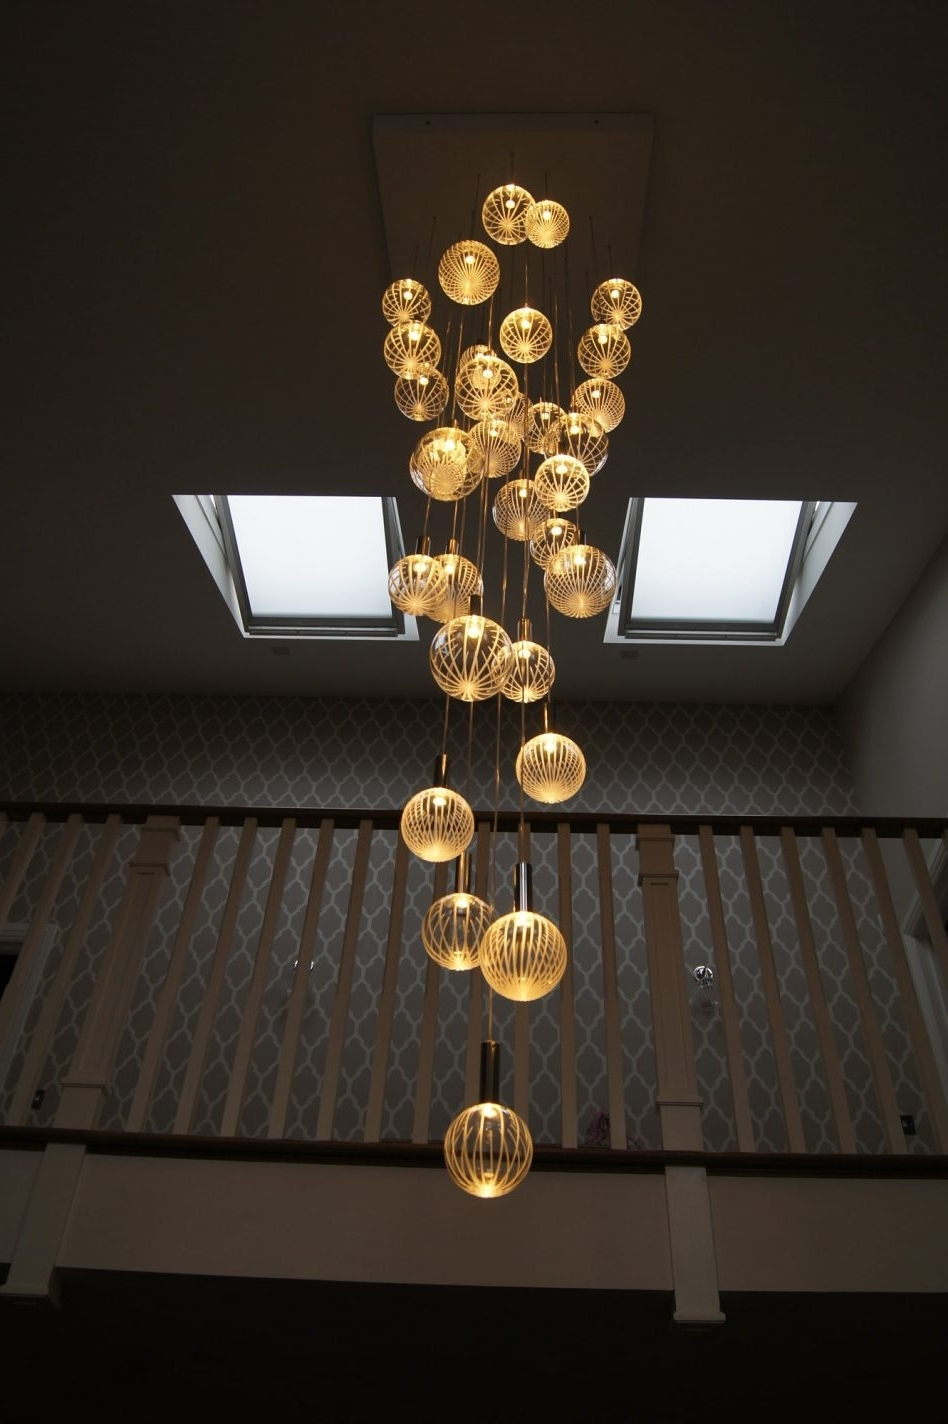 Extra Large Modern Chandeliers Intended For Recent Branch Chandeliers Colored Chandelier Led Ceiling For  Large (Gallery 16 of 20)